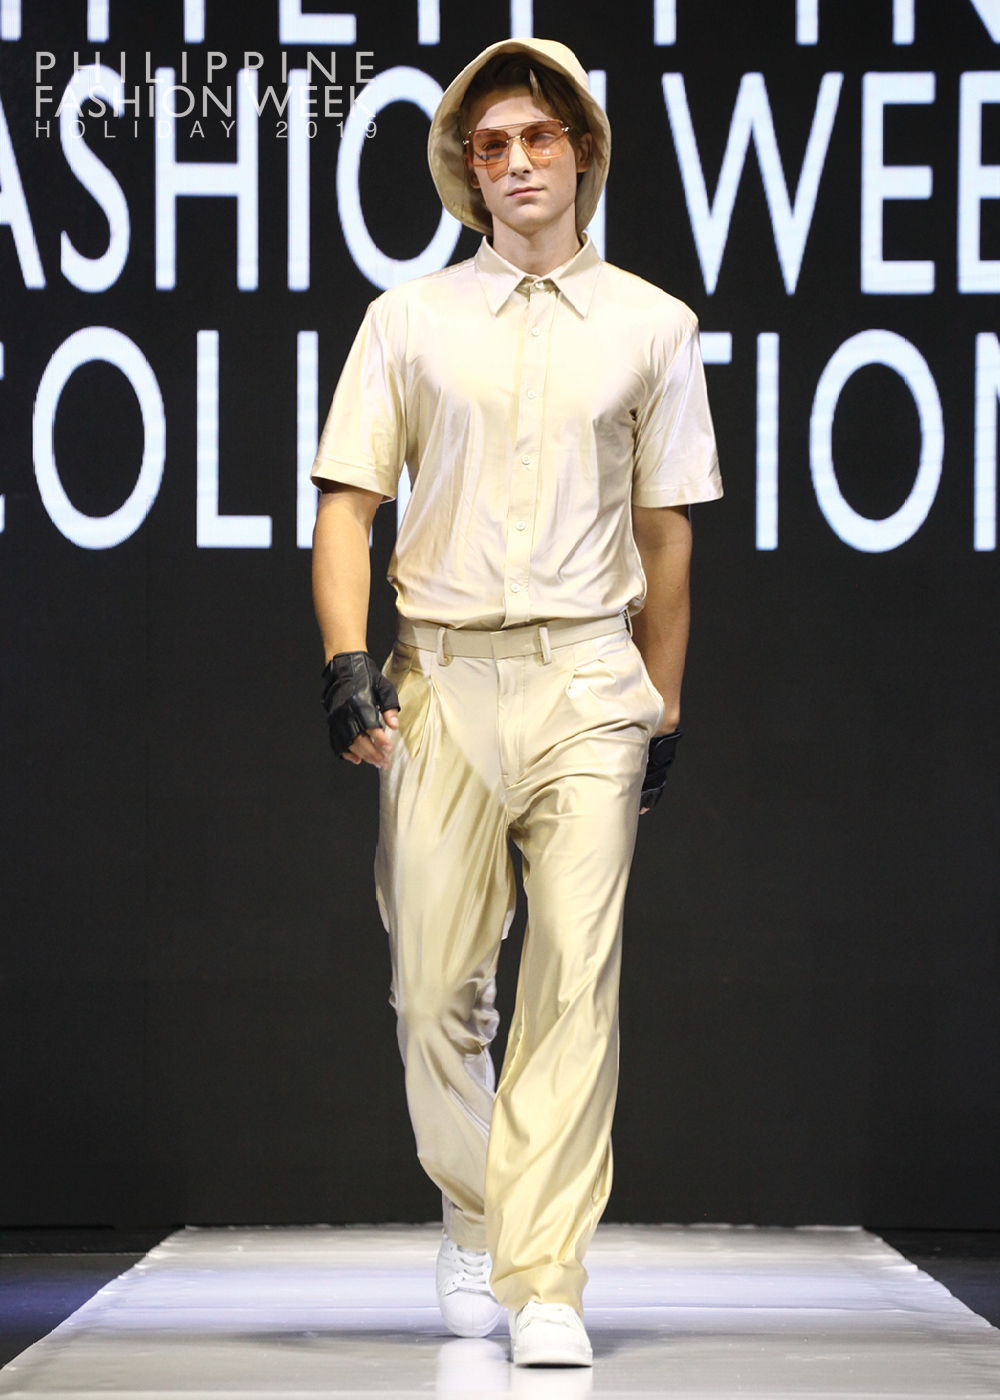 PhFW_collection show2.jpg